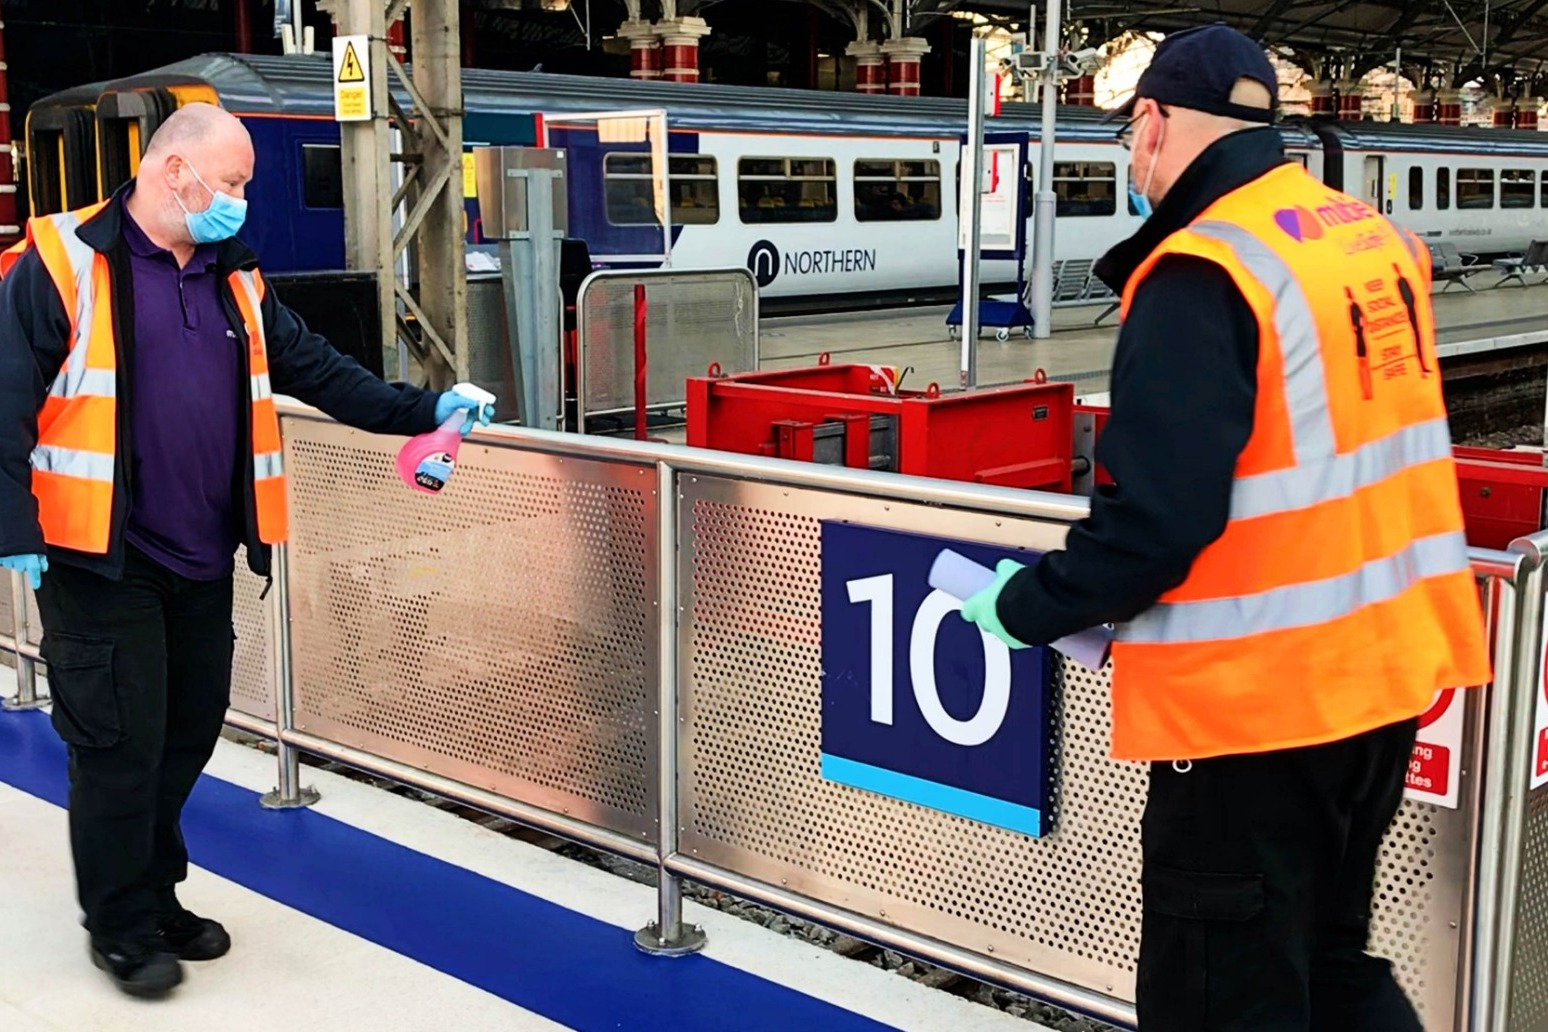 No traces of virus found in tests of railway stations and on trains